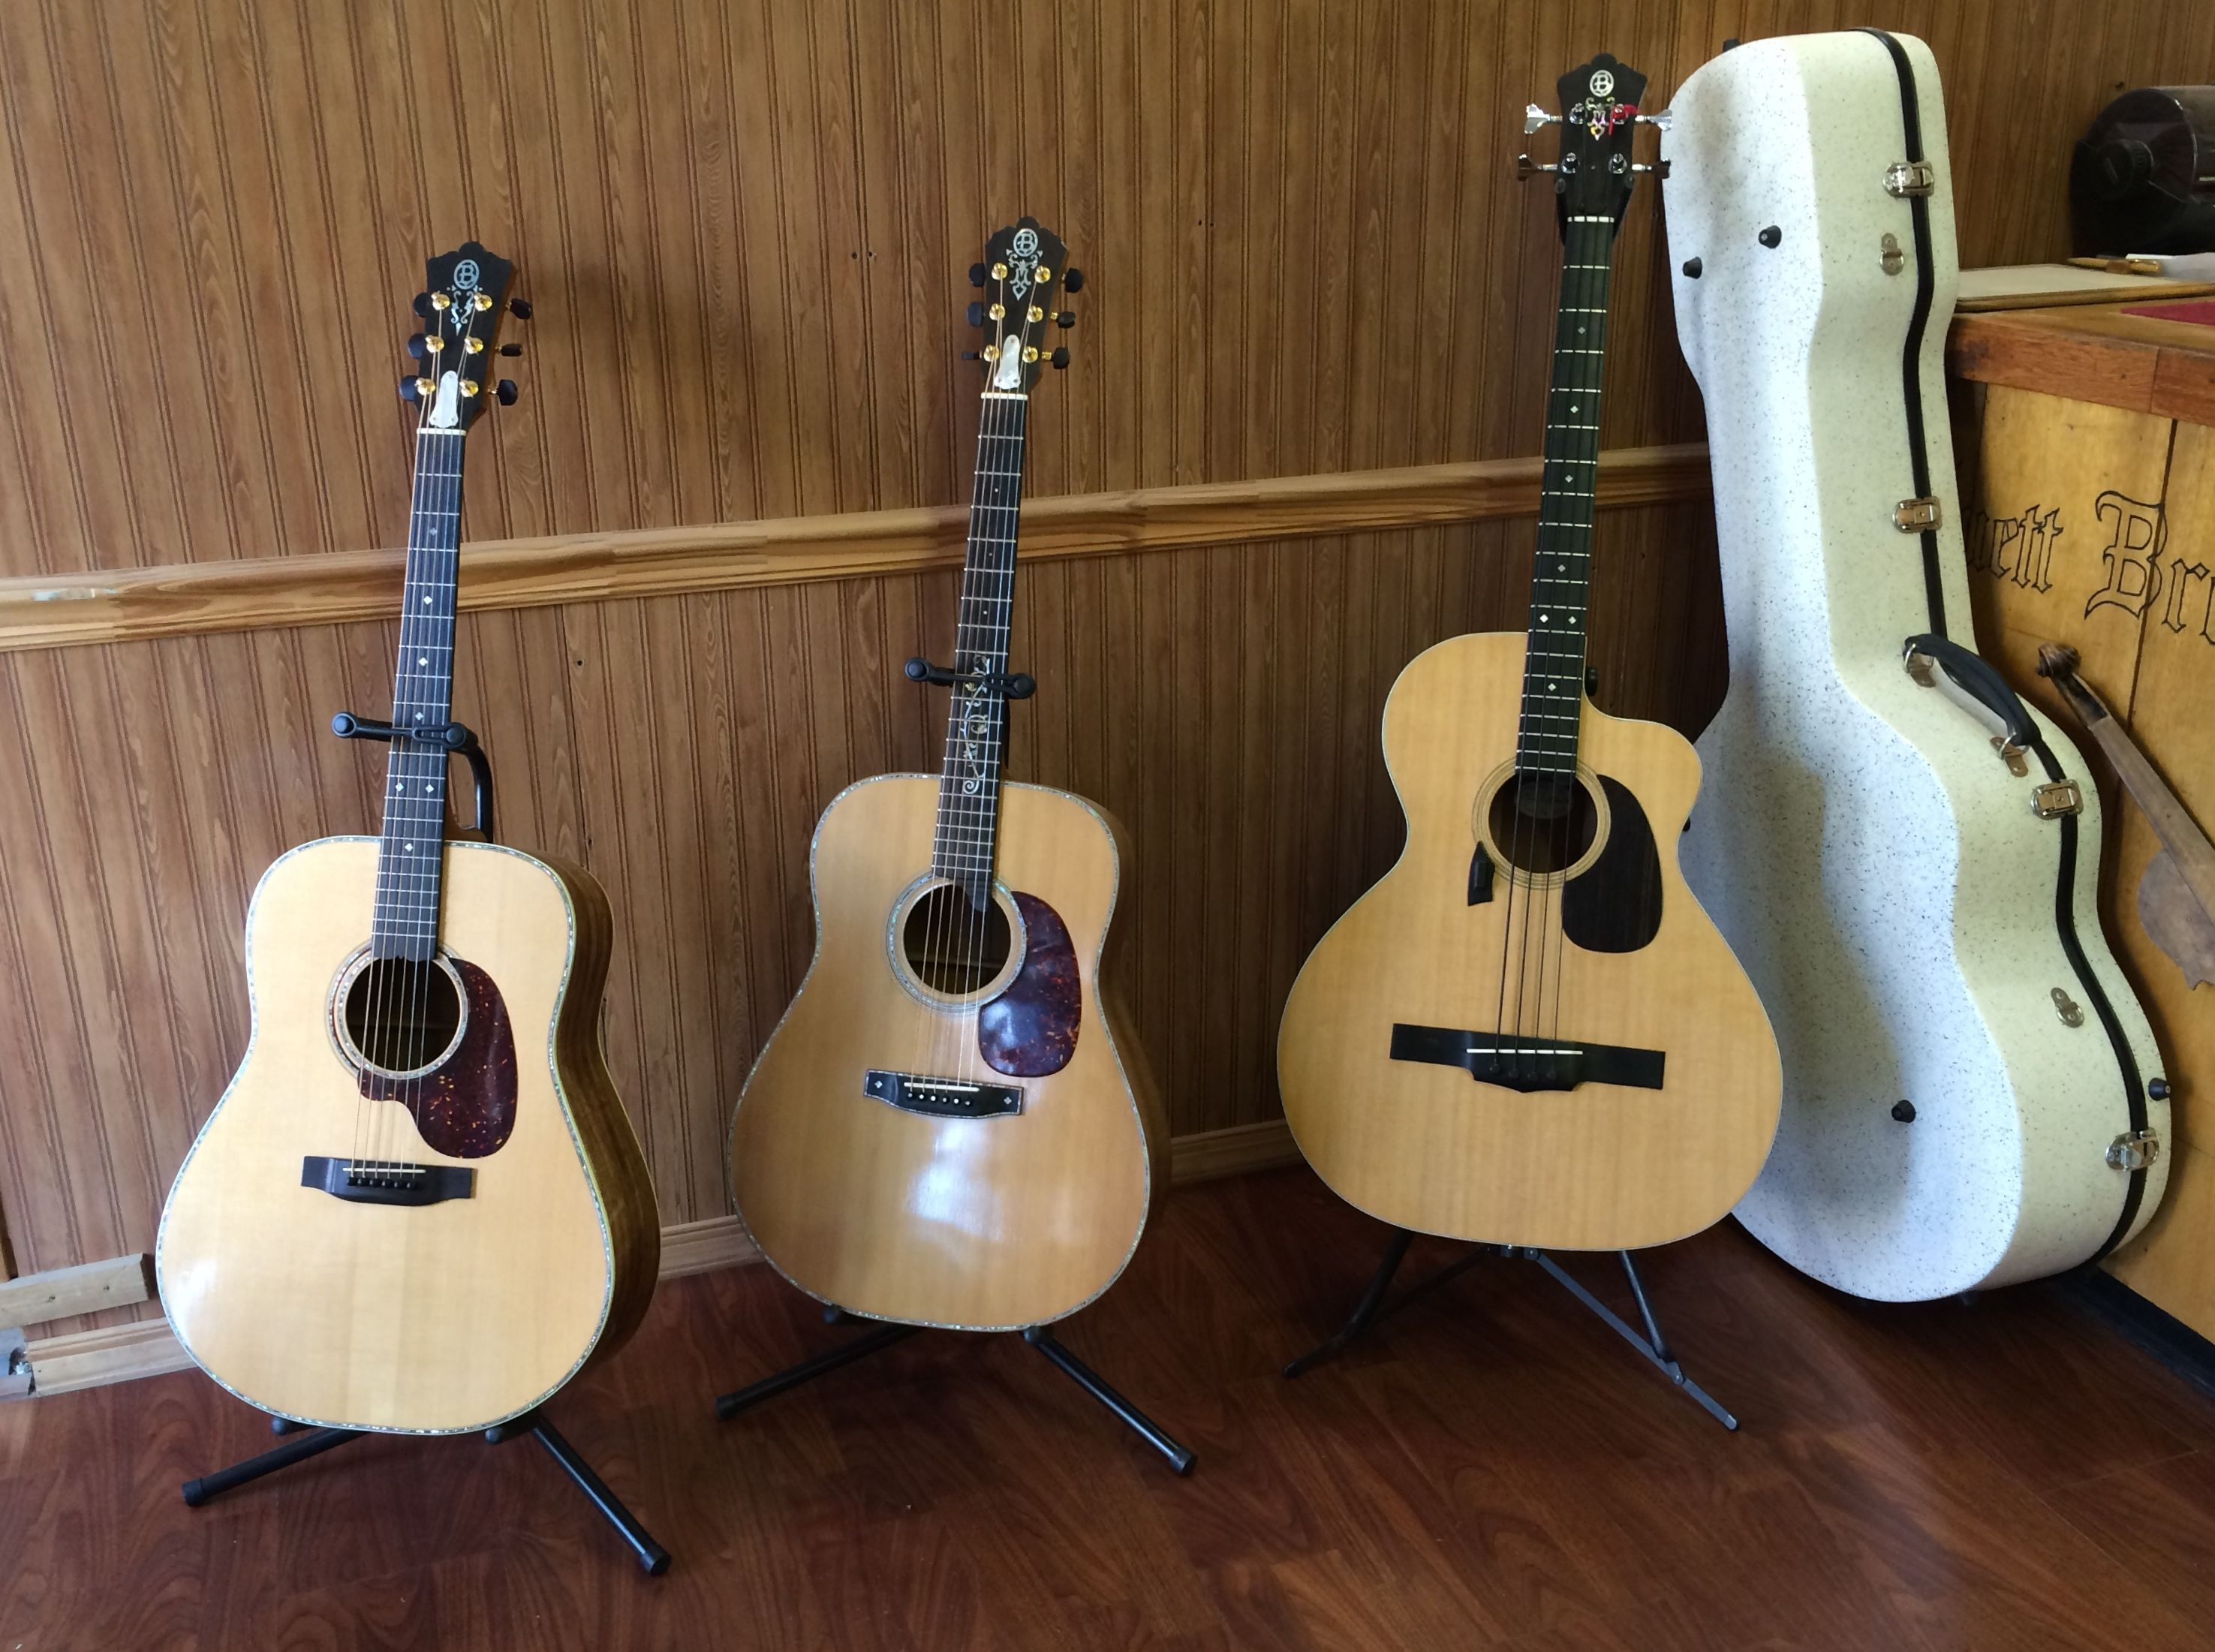 Three guitars and a $1200 case